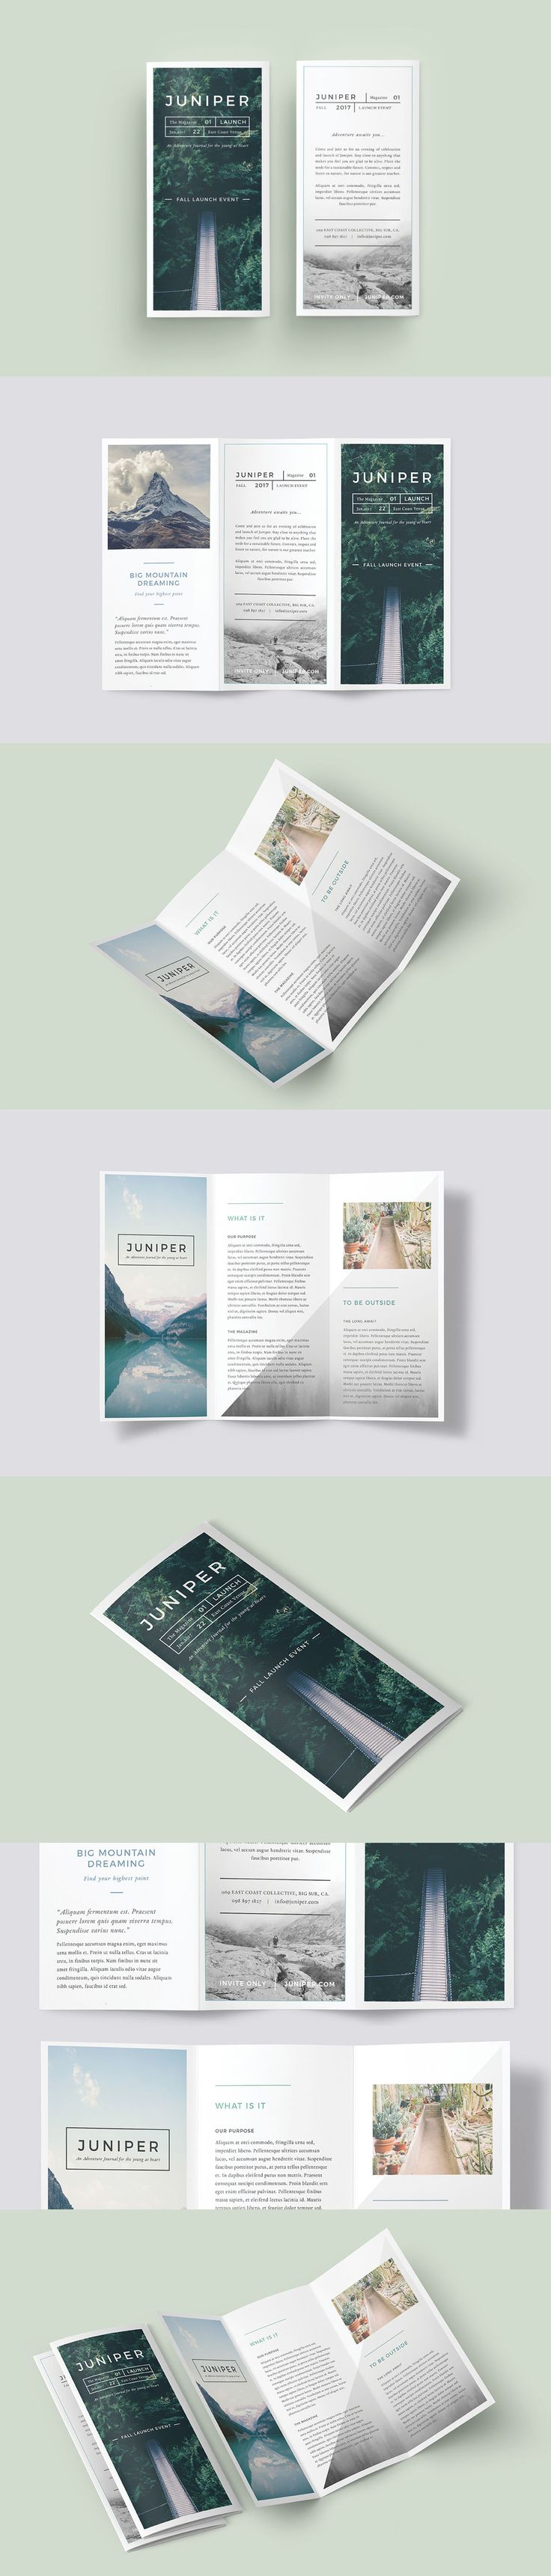 A Beautiful Multipurpose Tri-Fold DL Brochure Template InDesign INDD